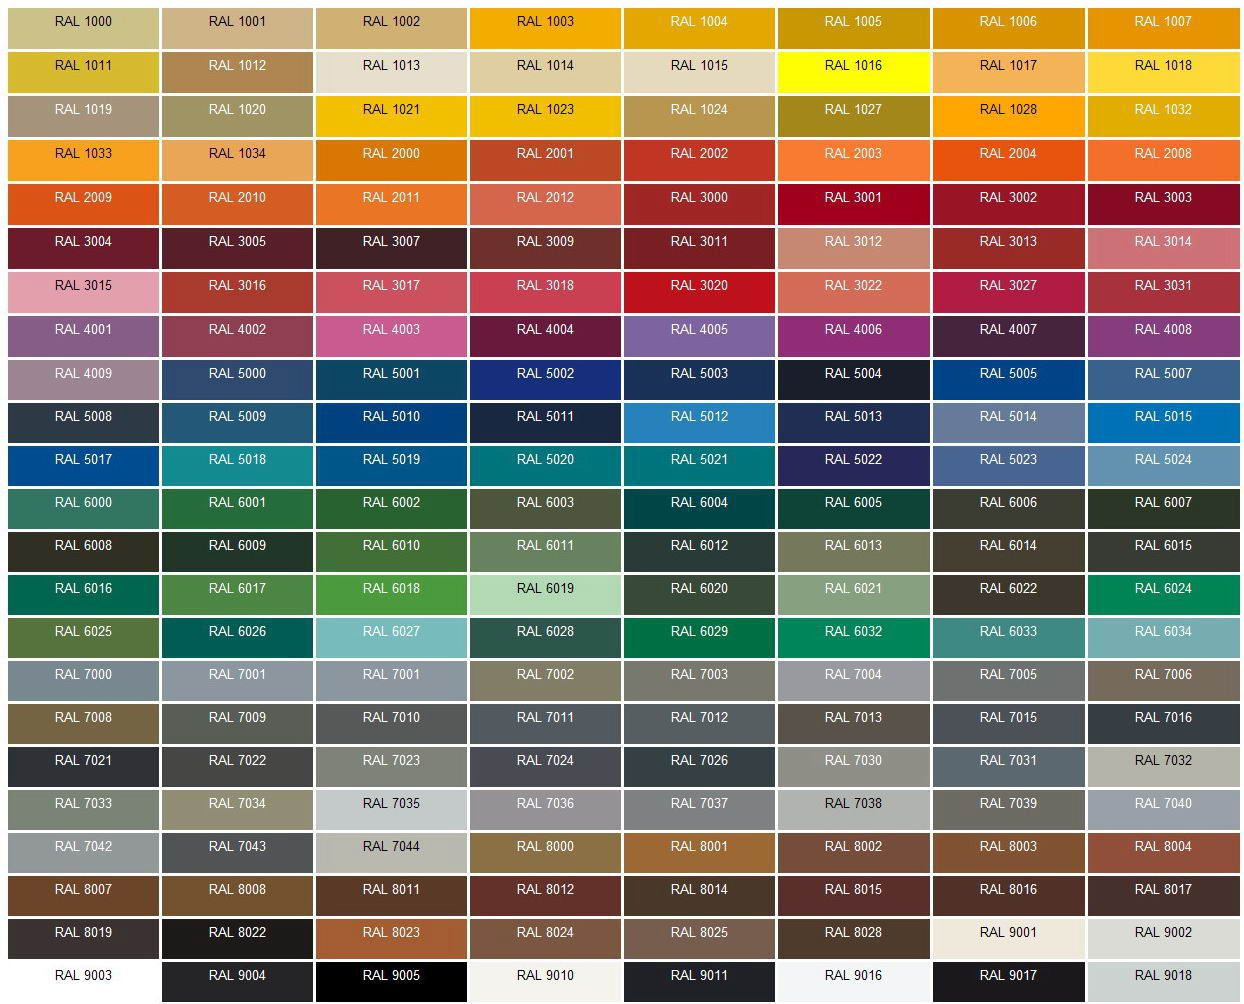 6281-ral-colours-large.jpg